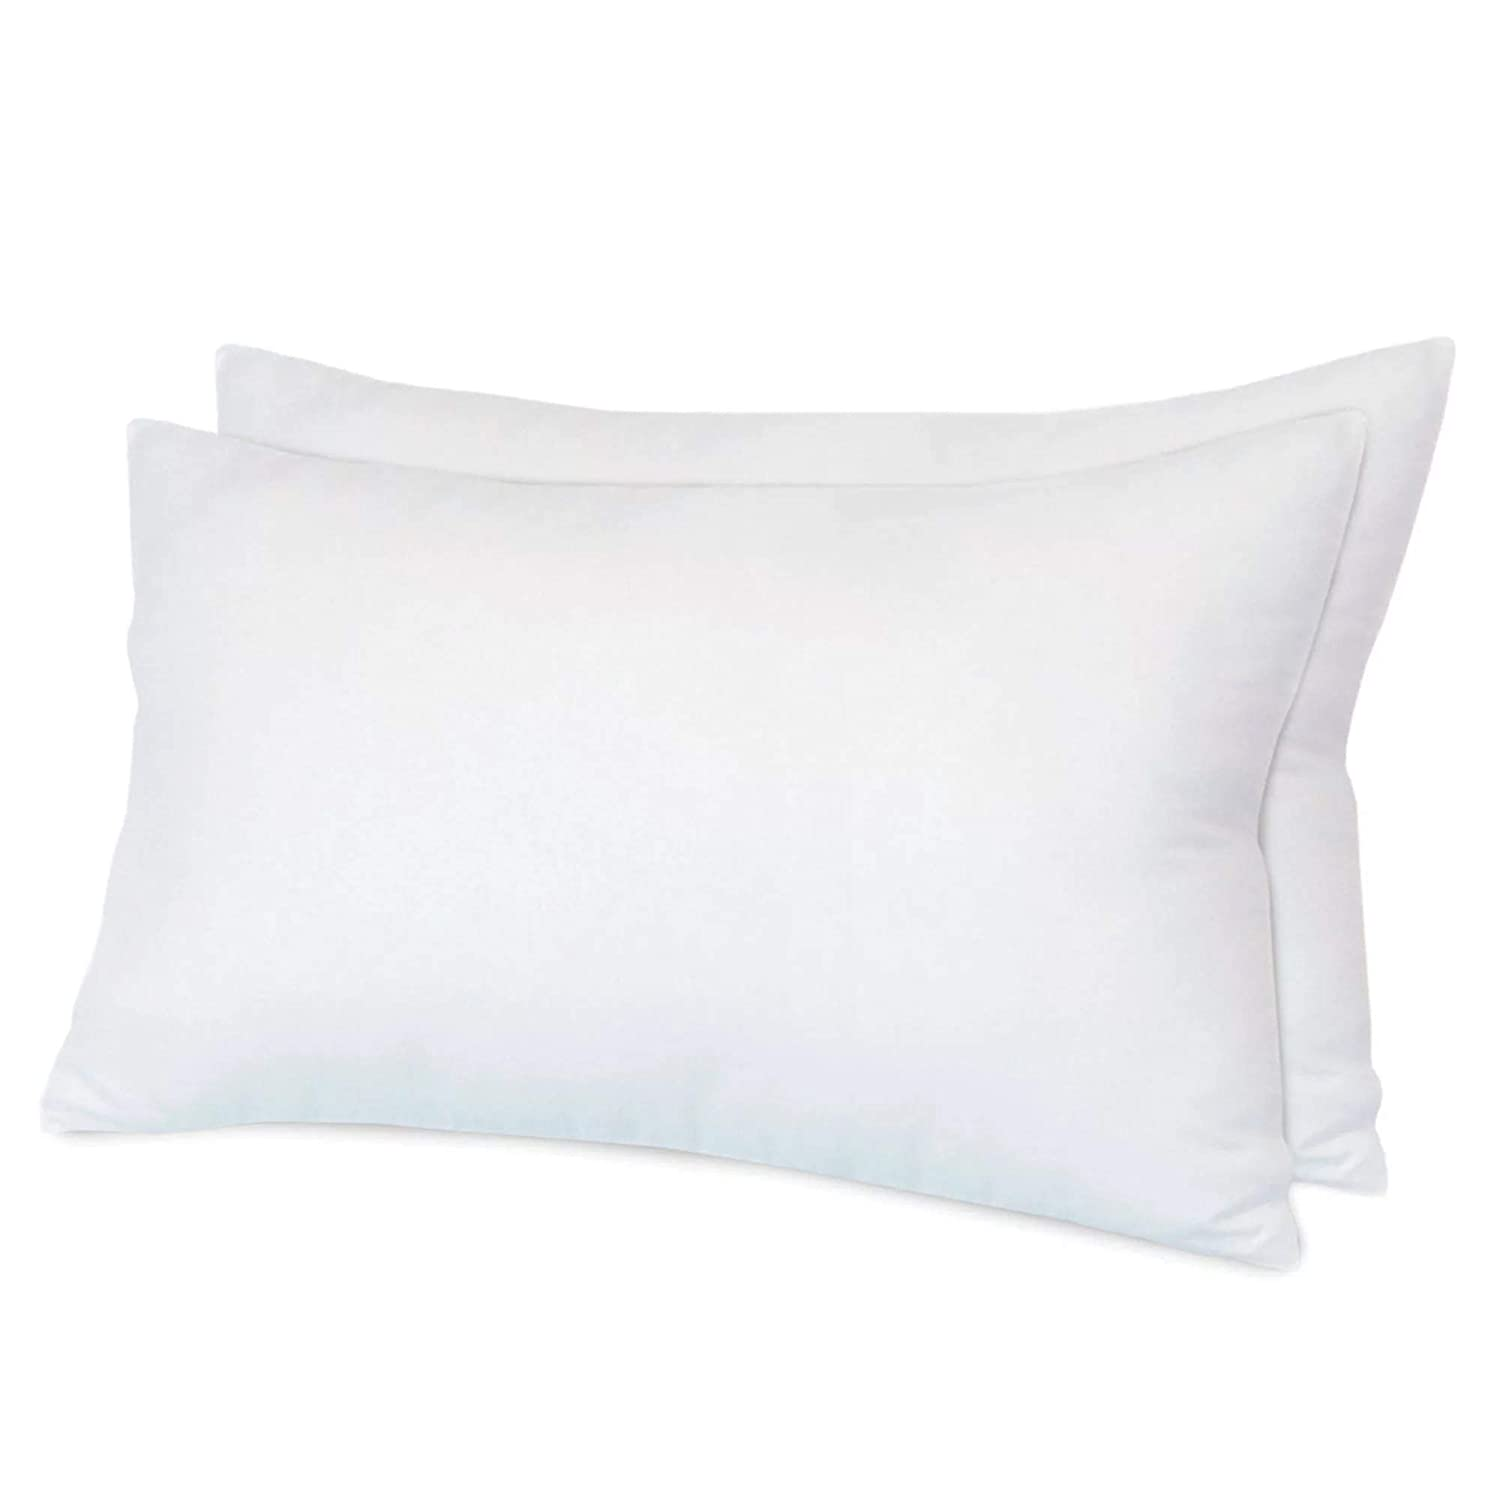 2 Pack Luxury Deep Sleep Pillows With Extra Hollowfibre Filling Bounce Back